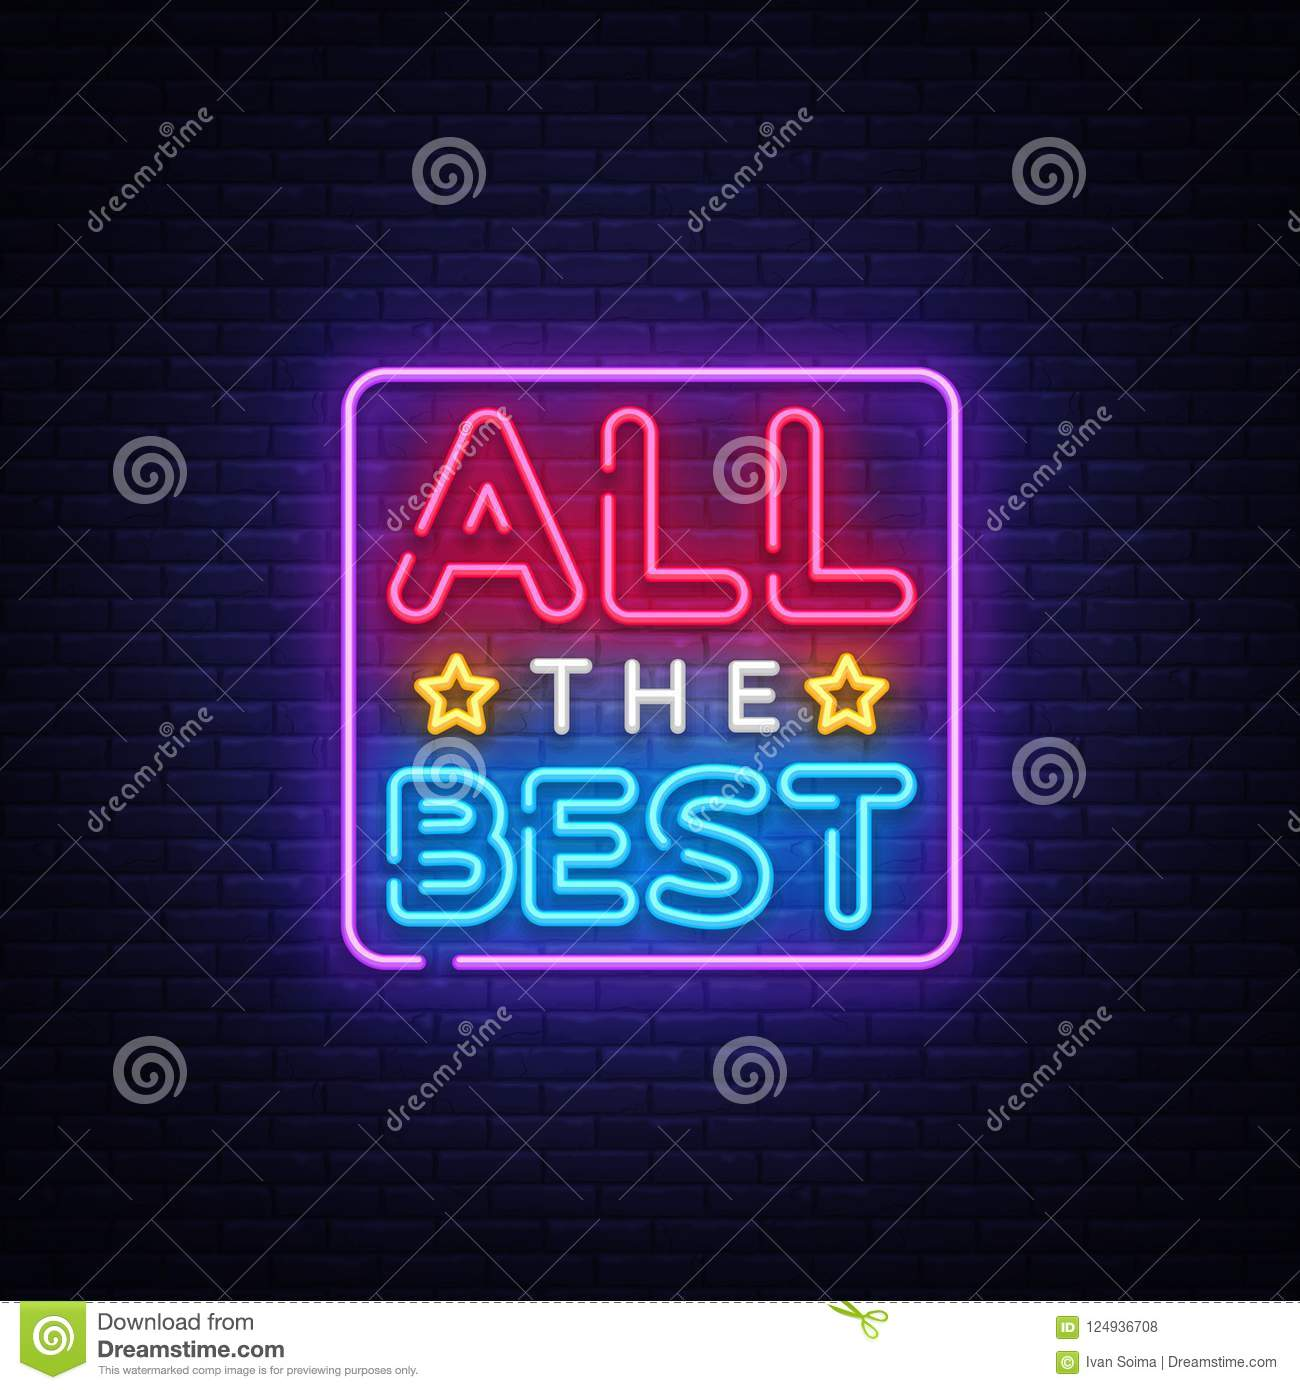 All the best Neon Text Vector. All the best neon sign, design template, modern trend design, night neon signboard, night